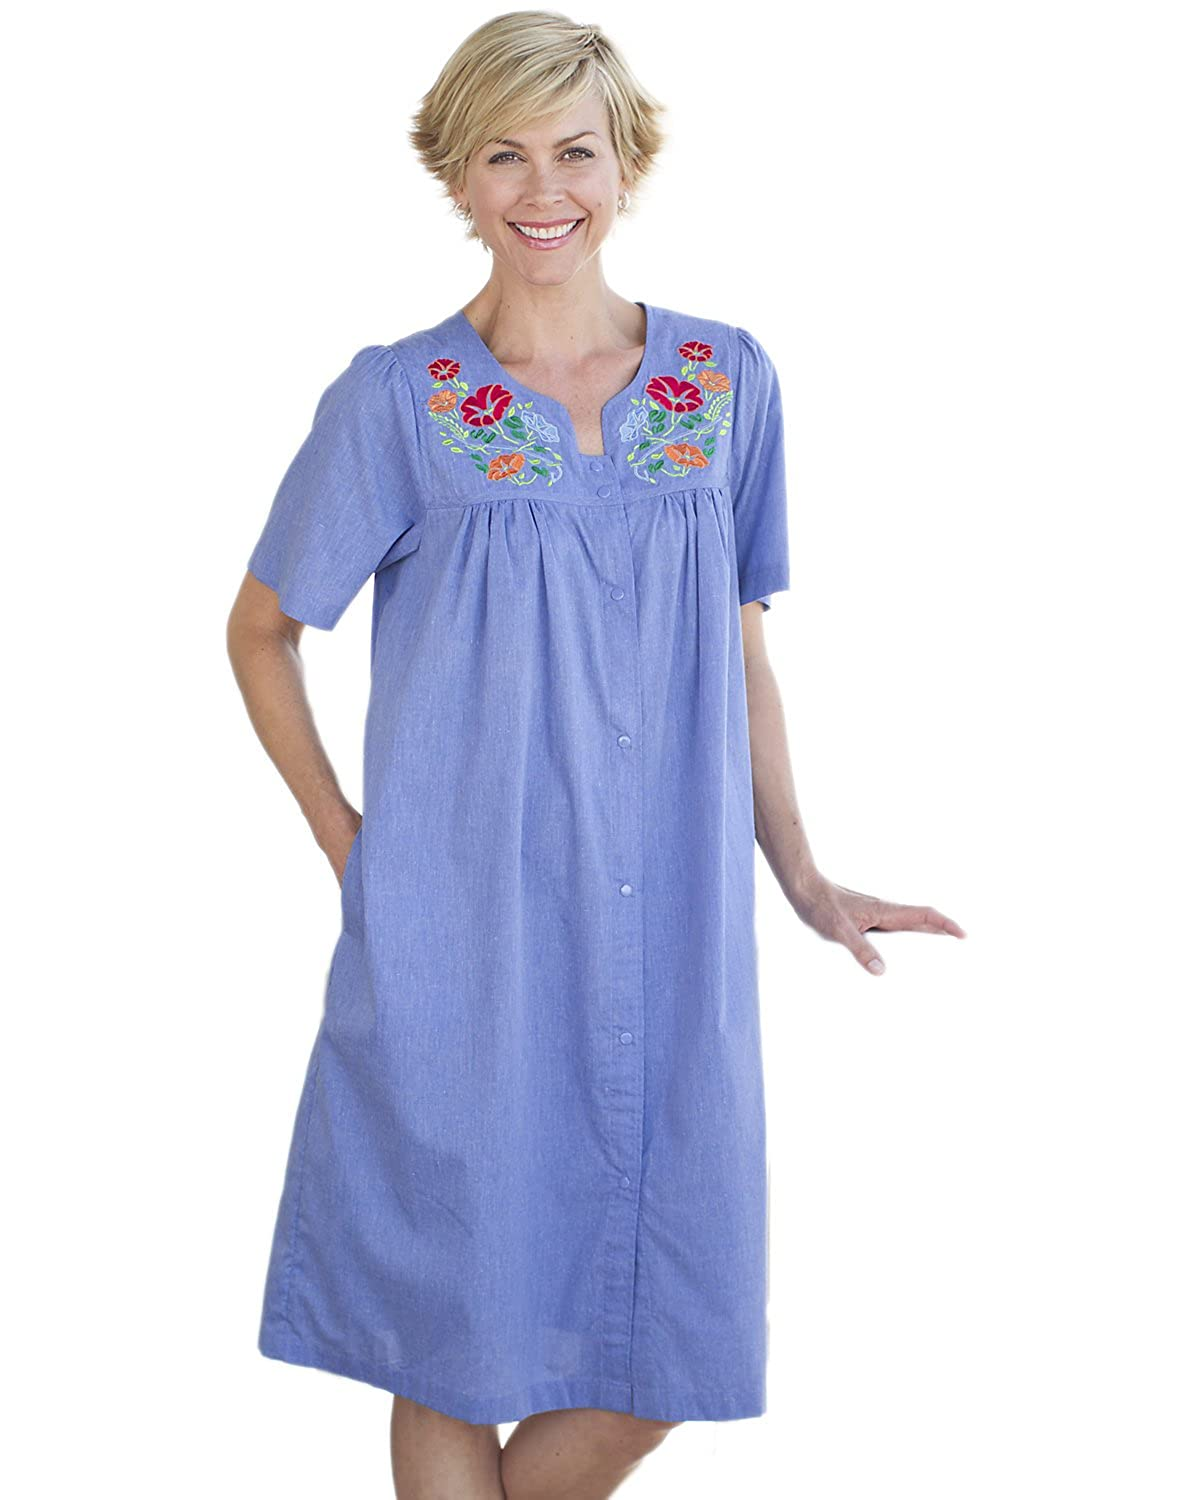 Wonderful Comfortable Dusters Housecoats And Housedresses For Mom  Hubpages